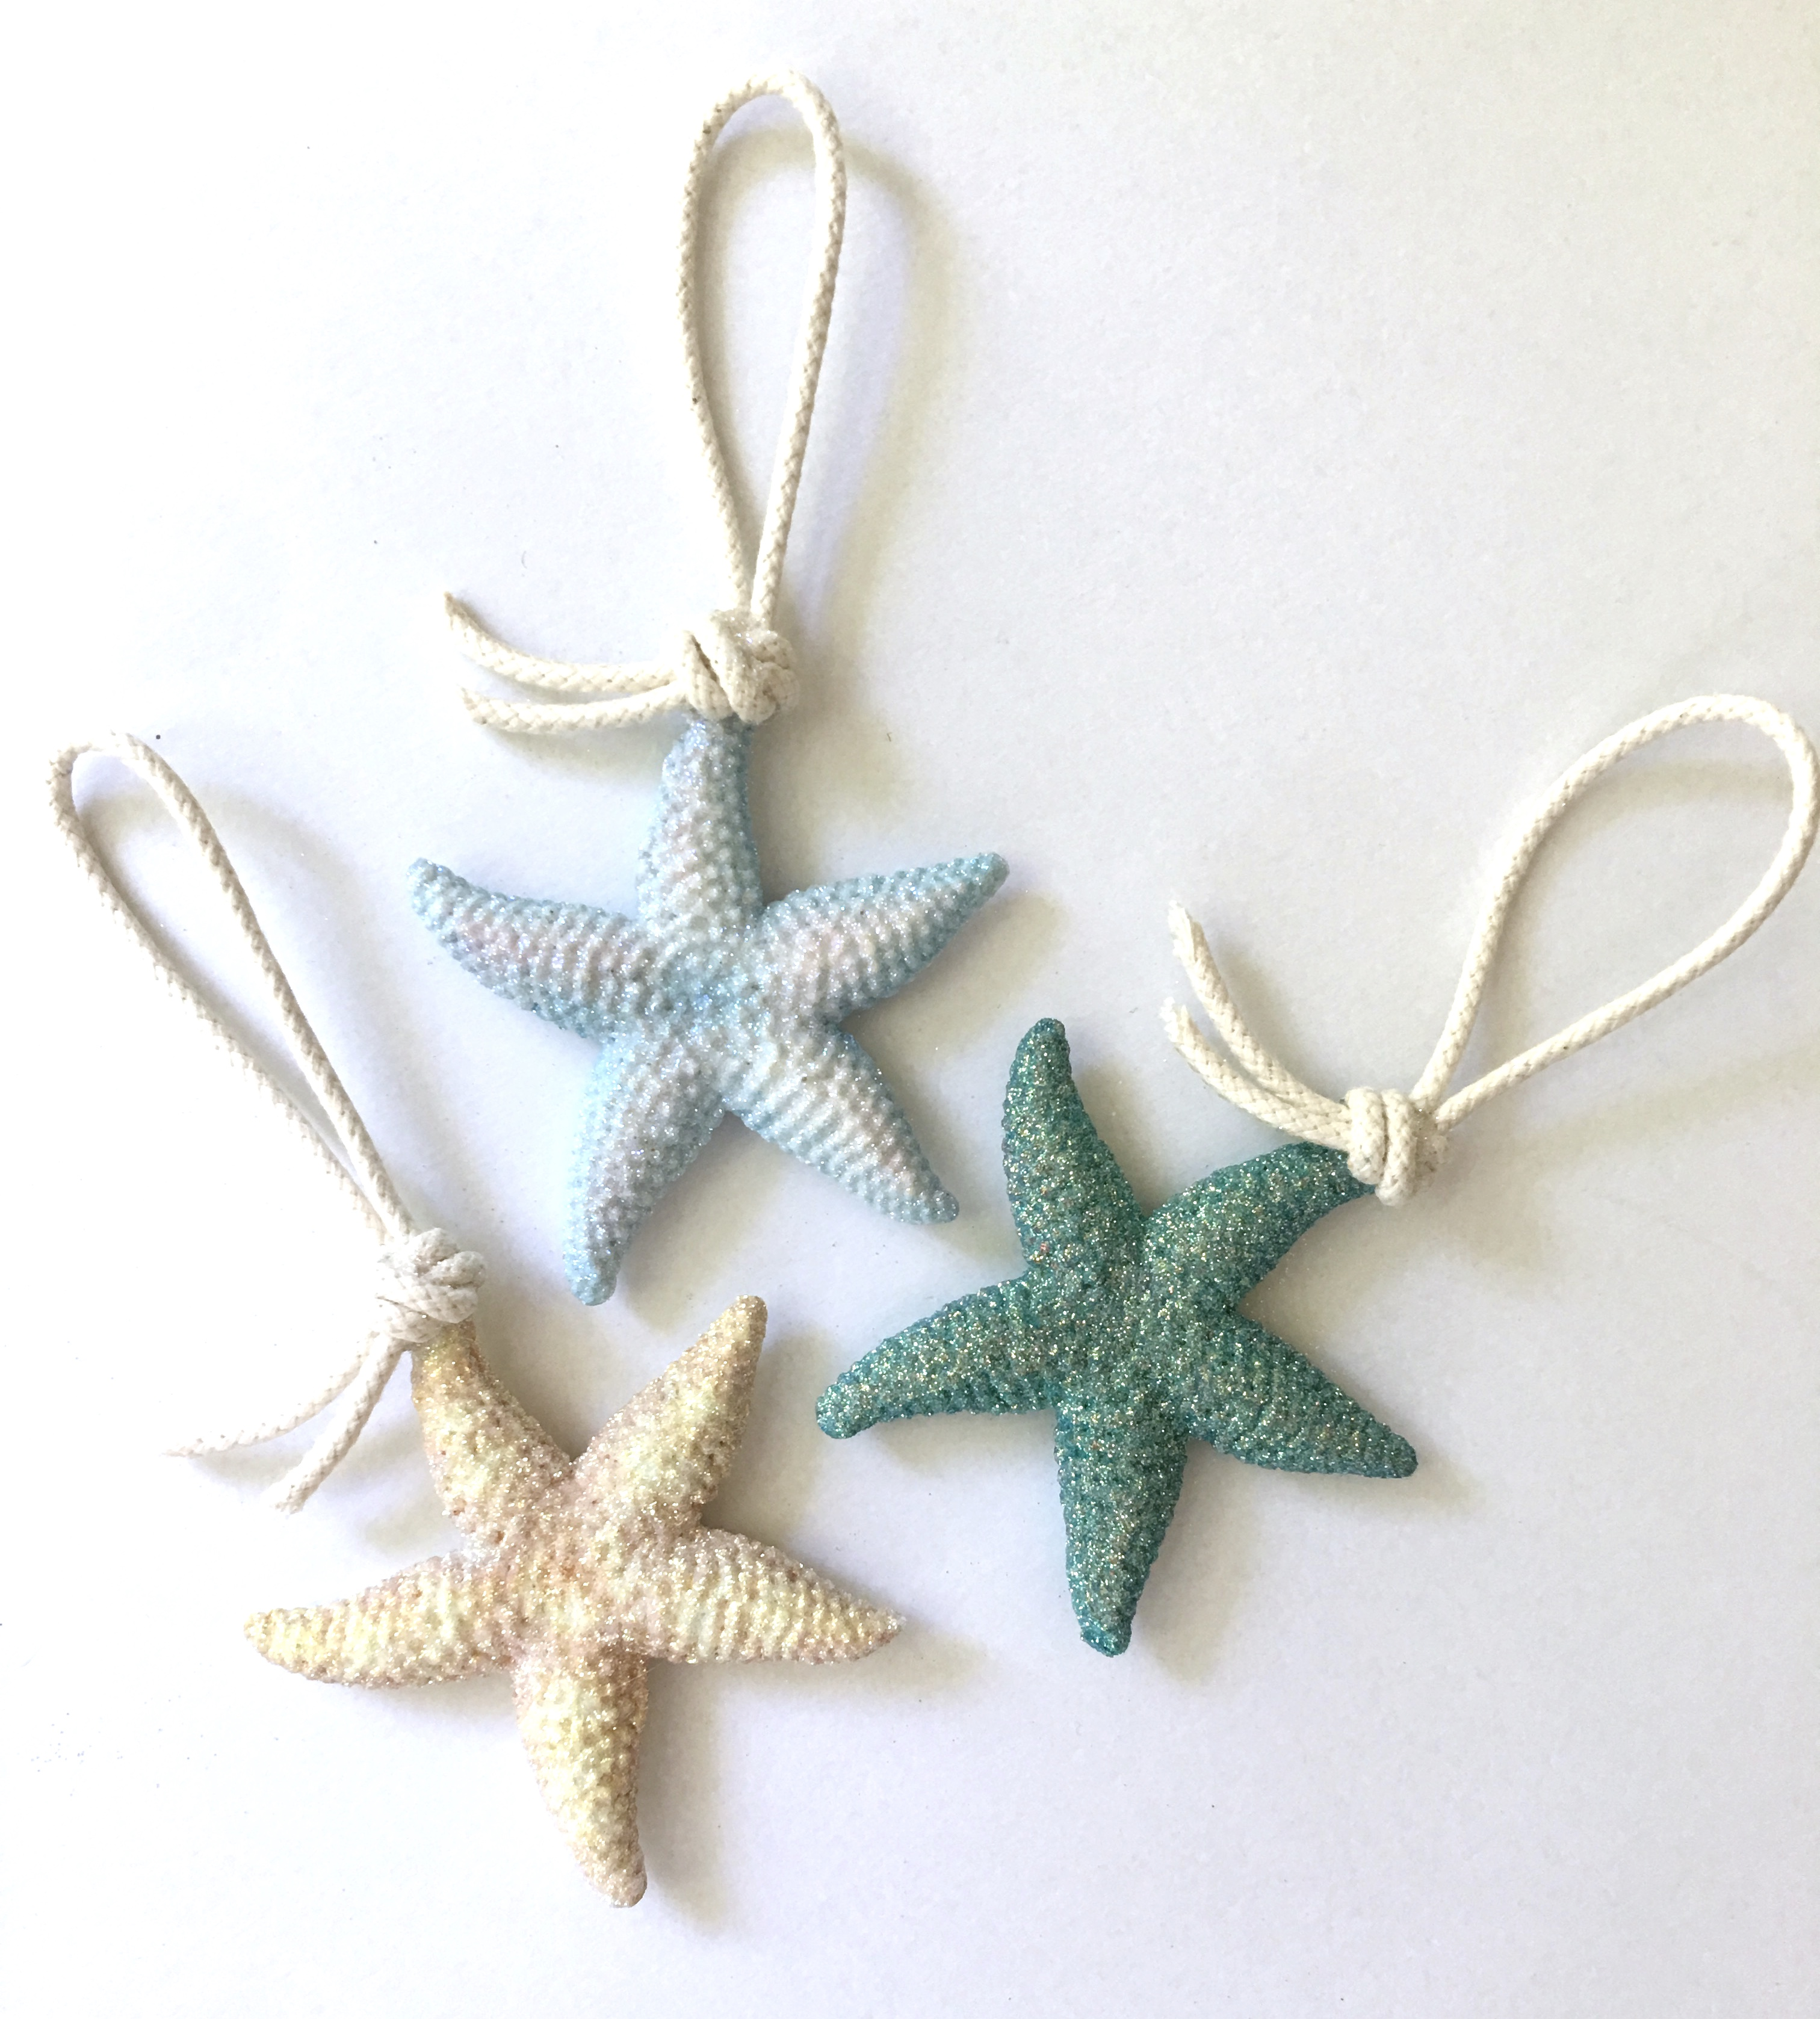 small resin sea stars